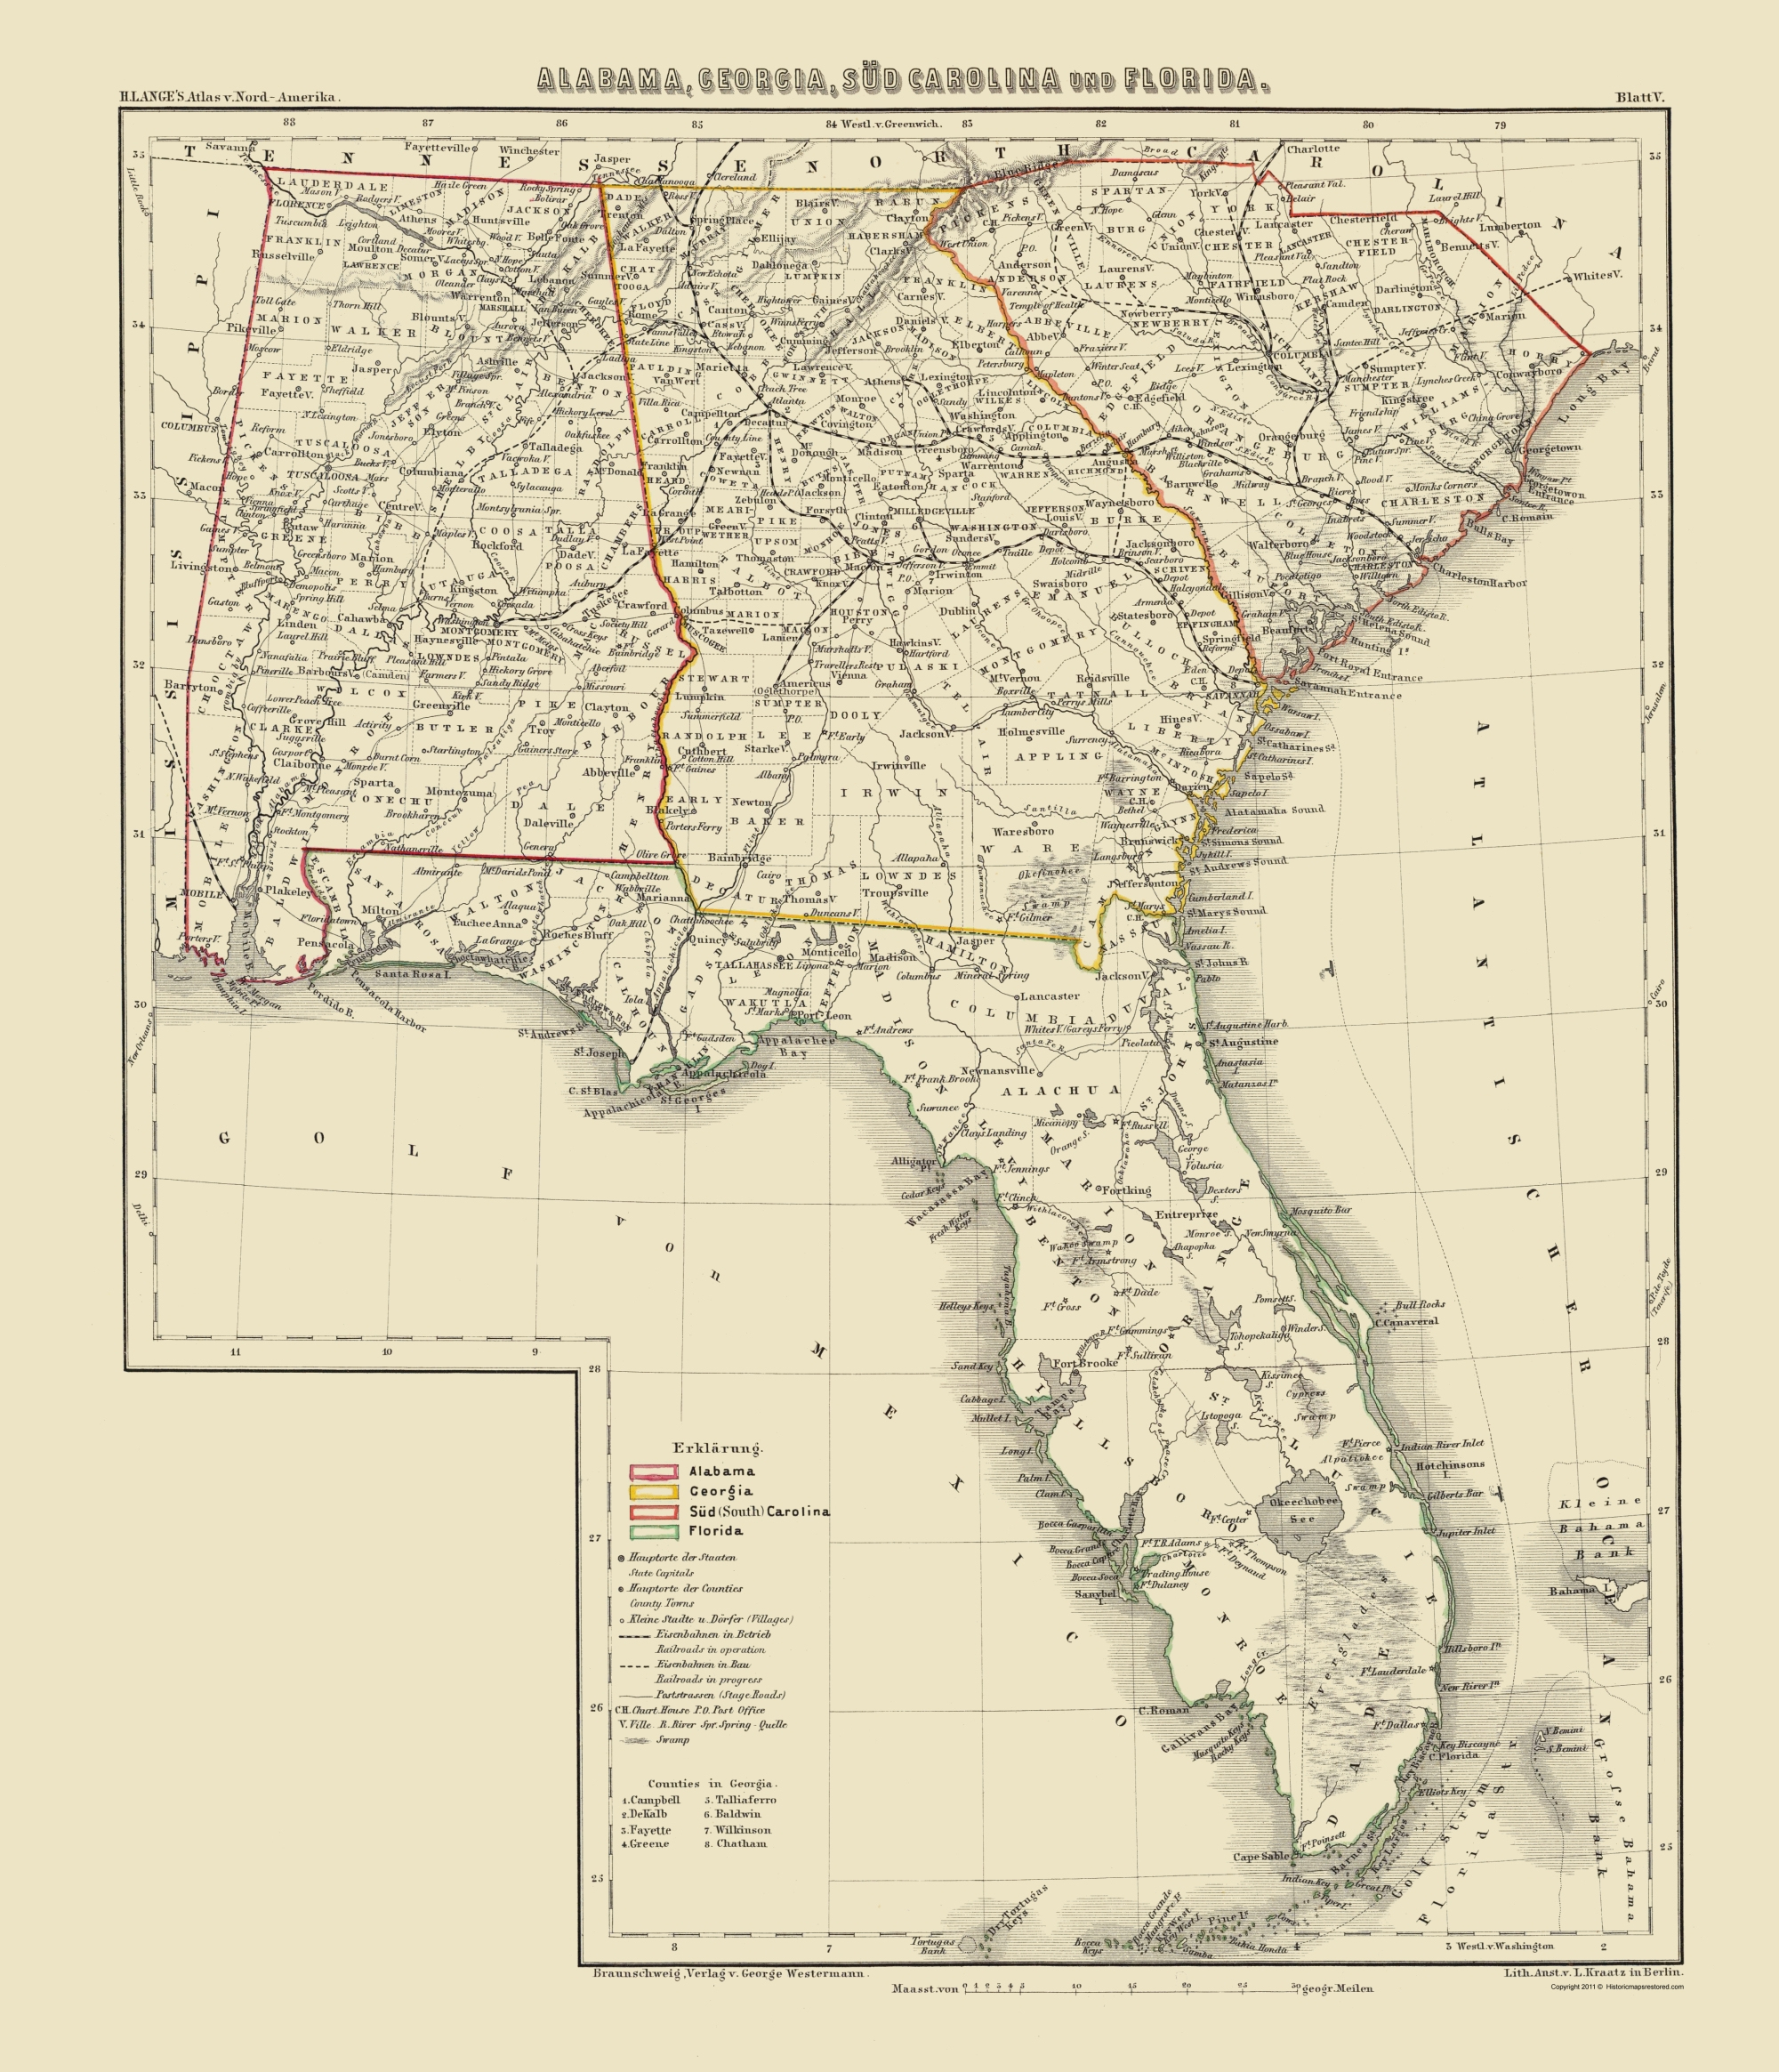 Old Map - Alabama, Georgia, South Carolina, Florida 1854 - Old Florida Maps Prints